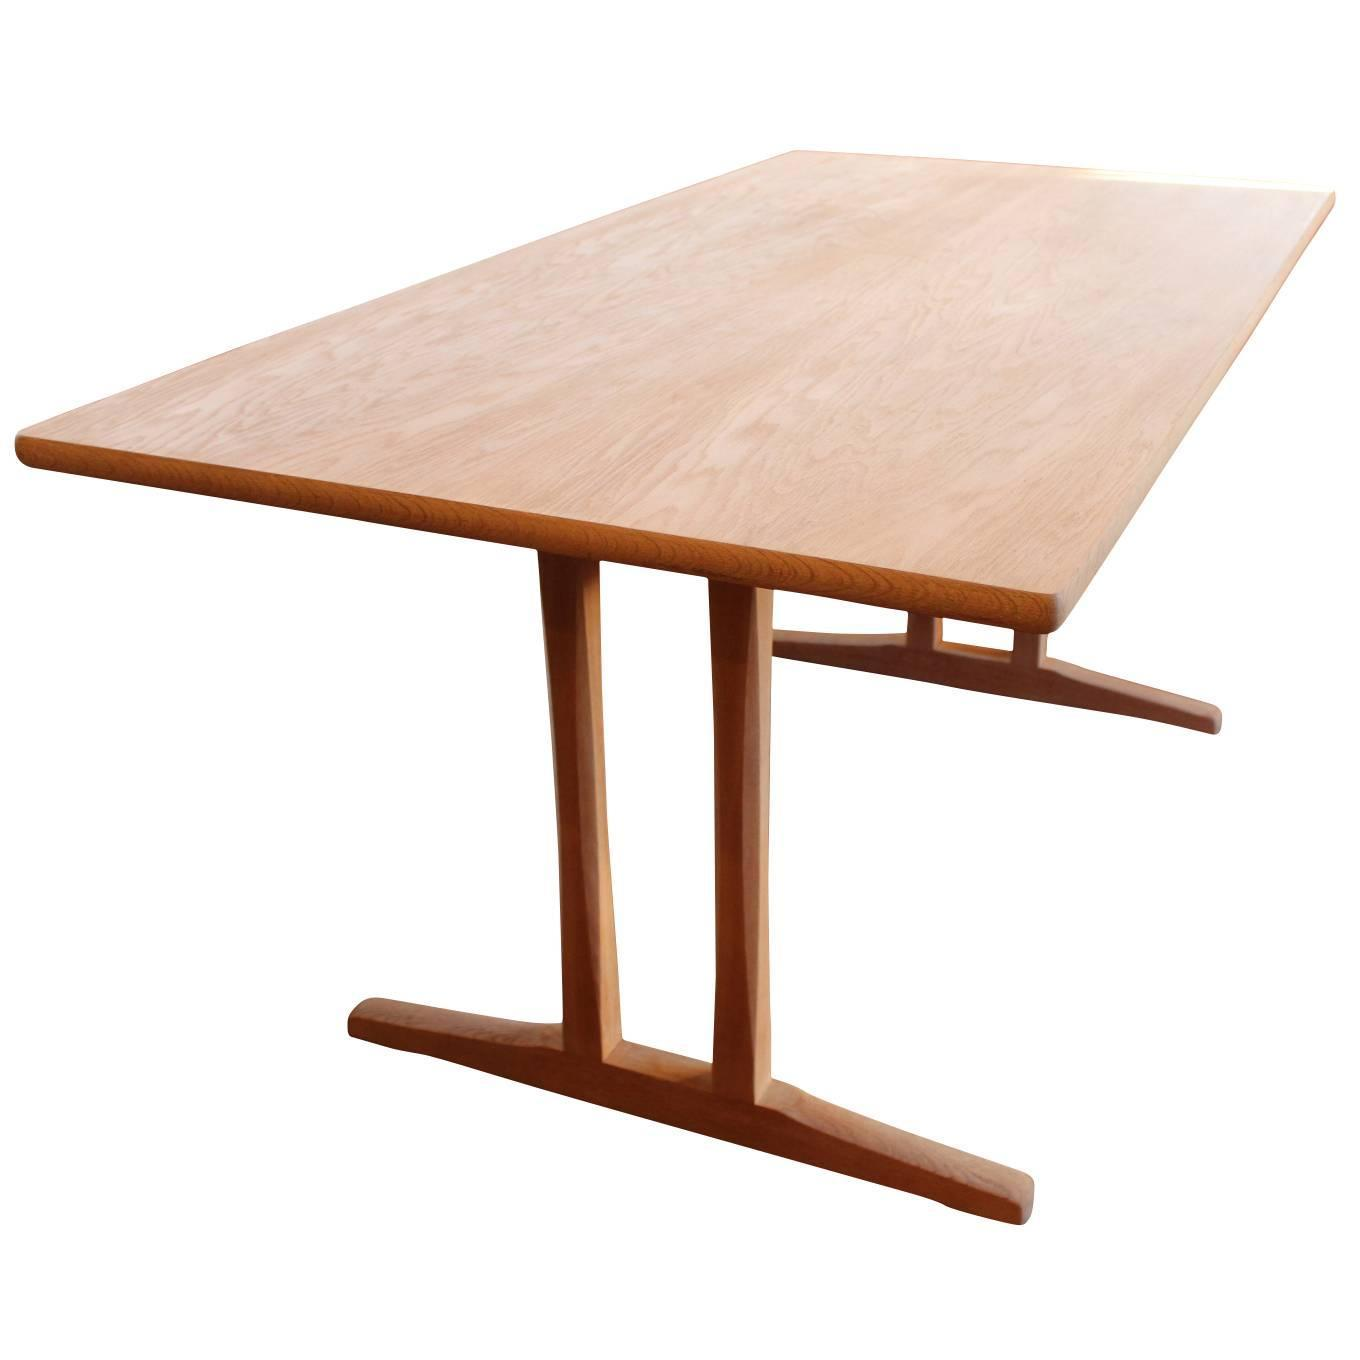 Shaker Dining Table, C18, Designed By Børge Mogensen And F.D.B. Furniture,  1957 For Sale At 1stdibs